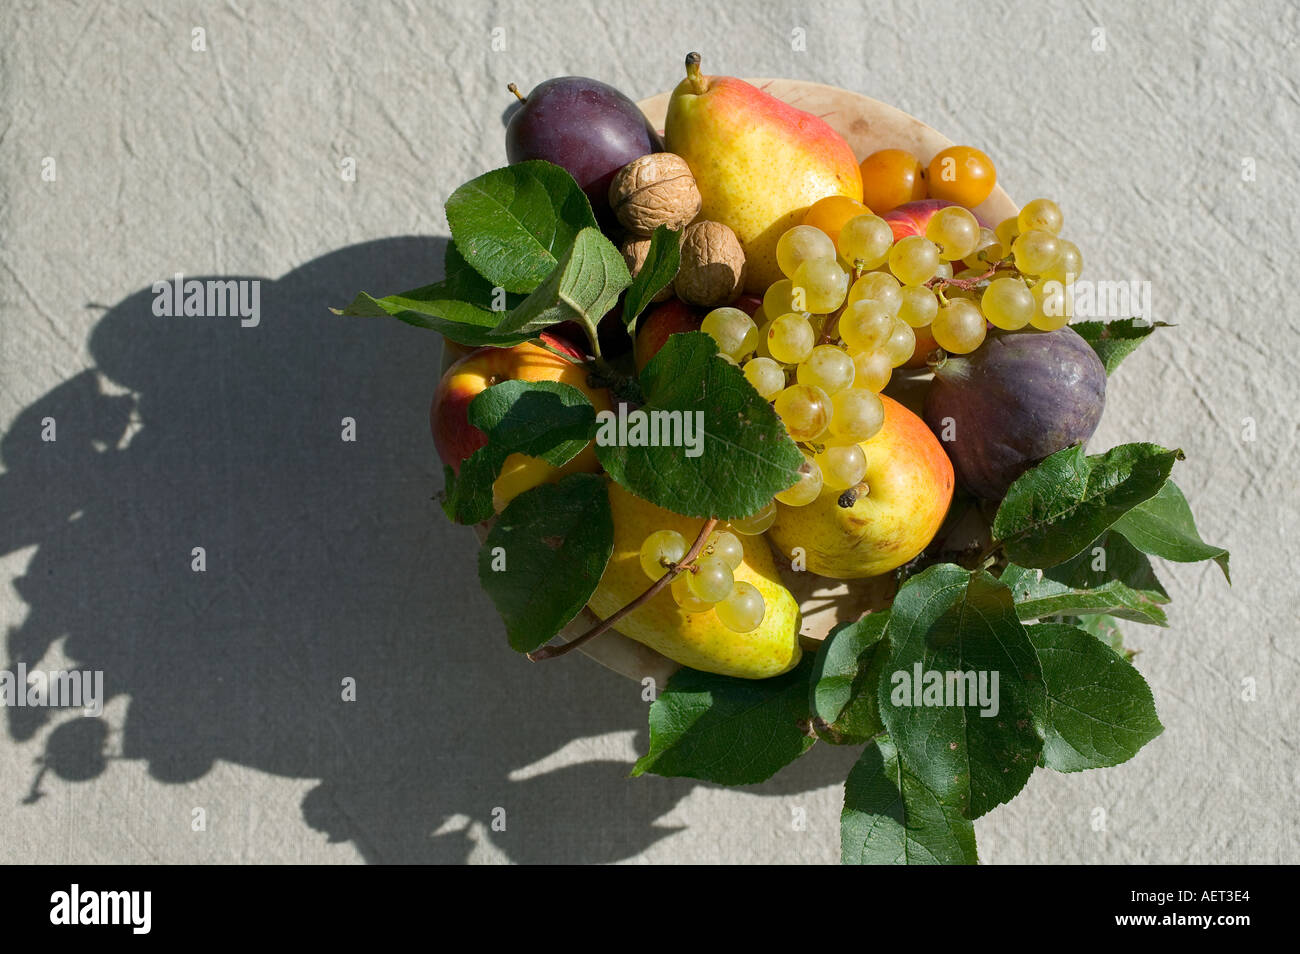 SEASONAL STILL LIFE WITH AN ASSORTMENT OF AUTUMNAL FRUITS AND SHADOW - Stock Image